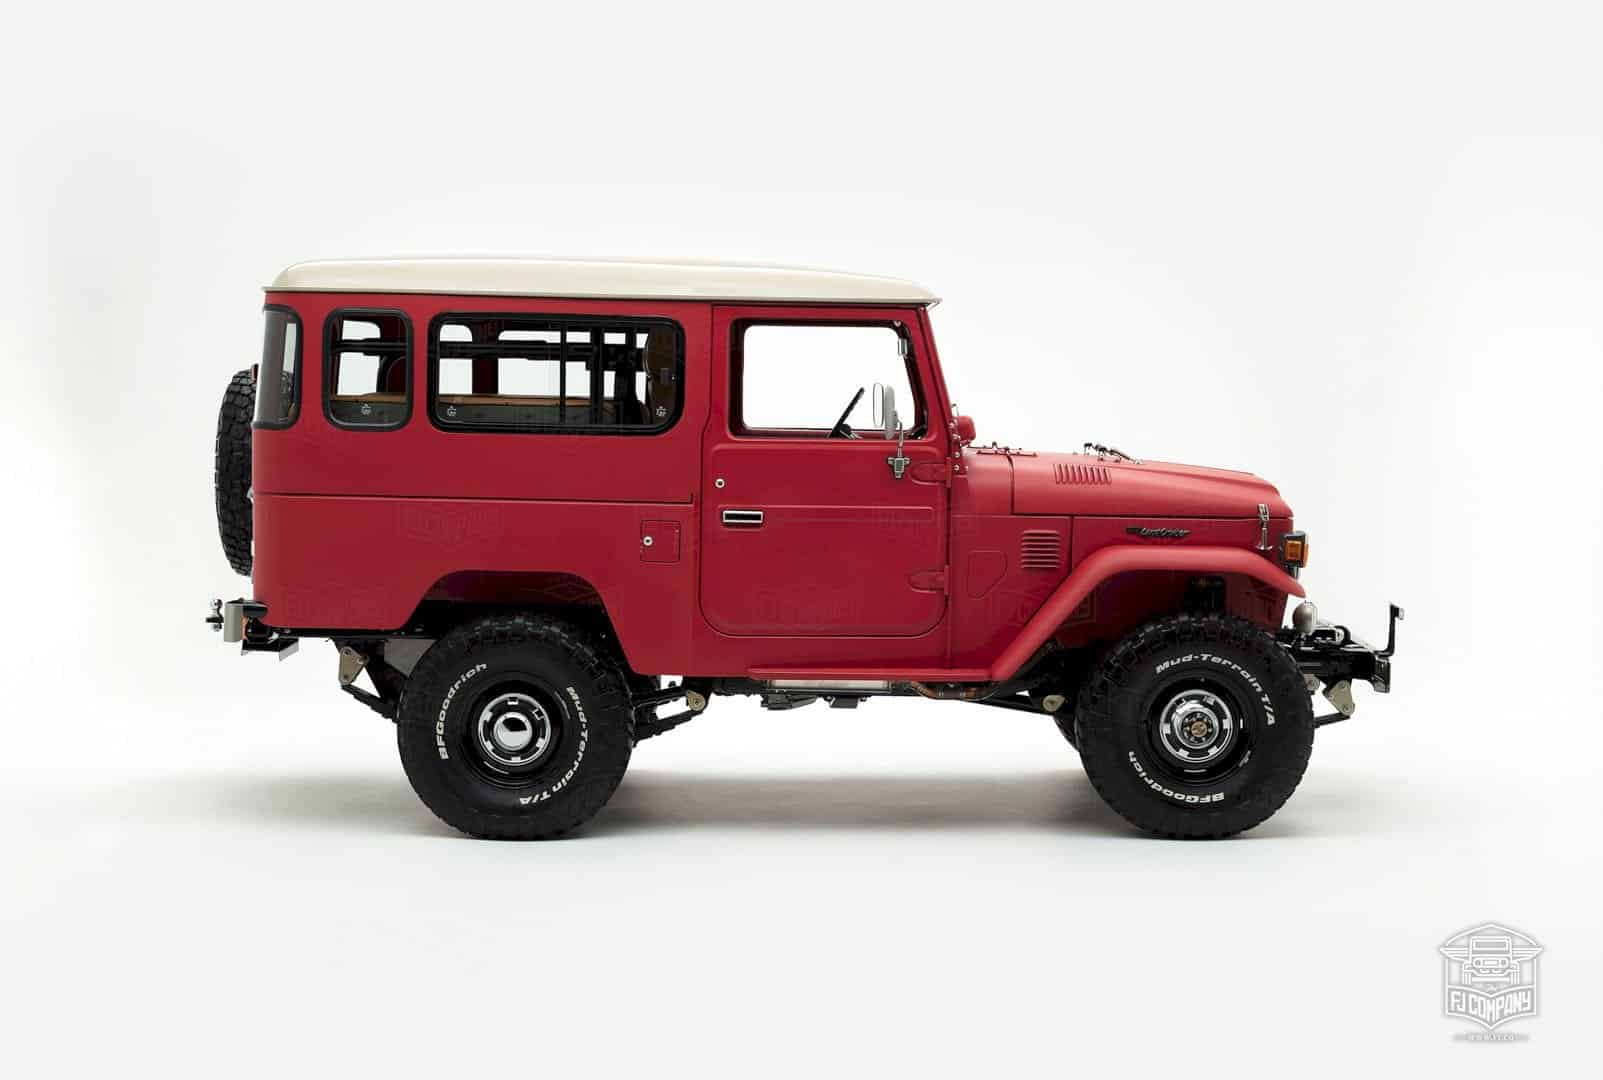 1981 Toyota Land Cruiser FJ43 – The Freeborn Red